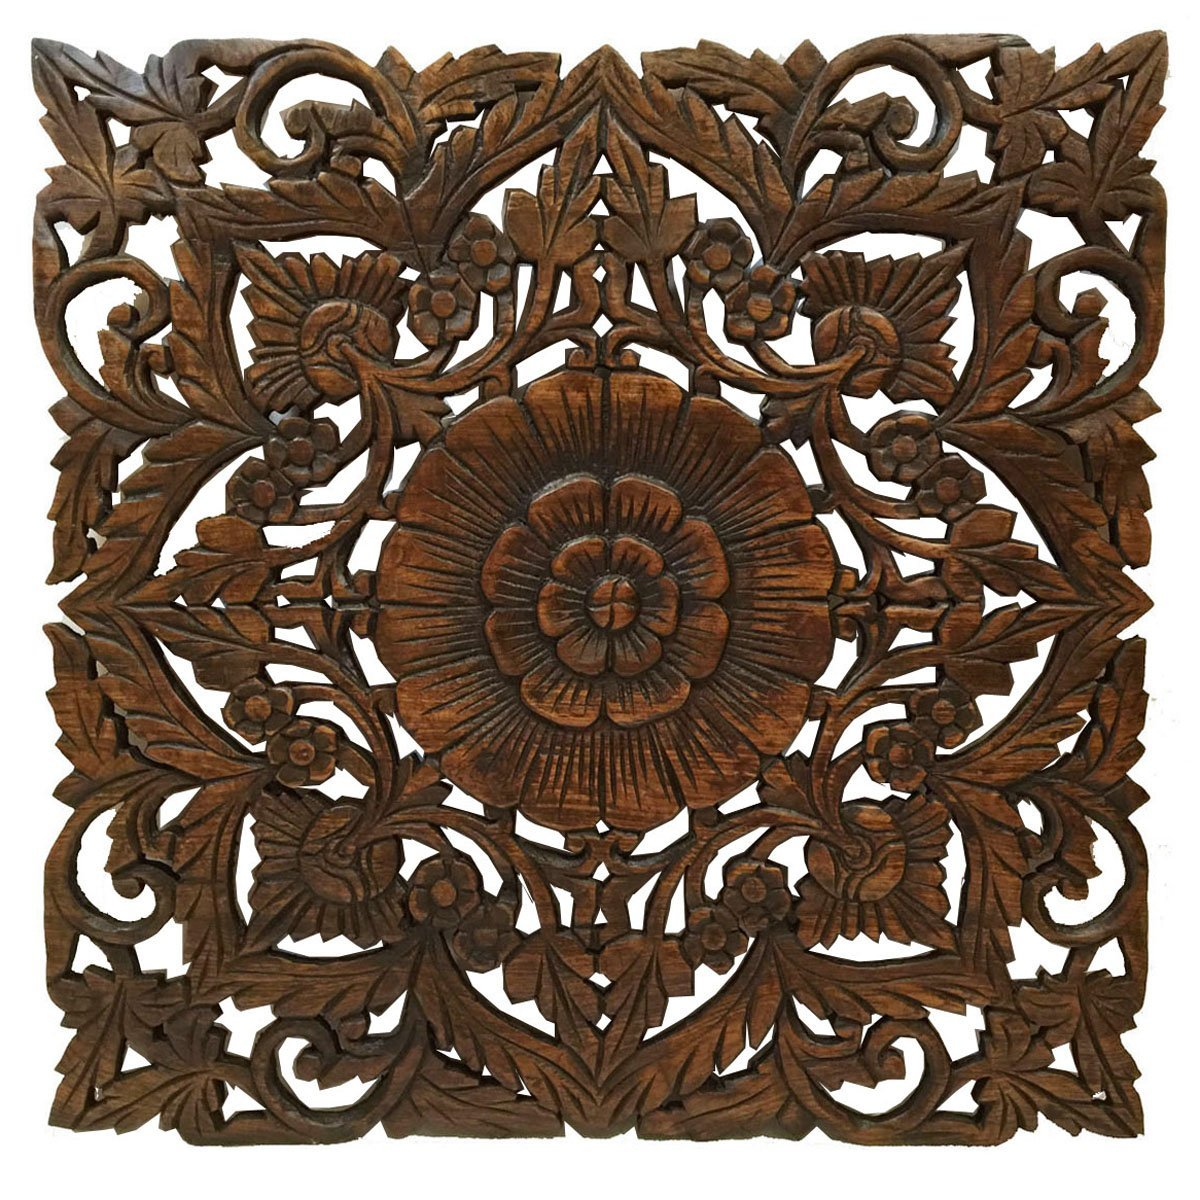 "Large Wood Wall Art- Oriental Carved Wood Wall Decor. Floral Wall Decor. Asian Home Decoration. Rustic Home Decor. Size 24""x24""x0.5"" (Dark Brown)"